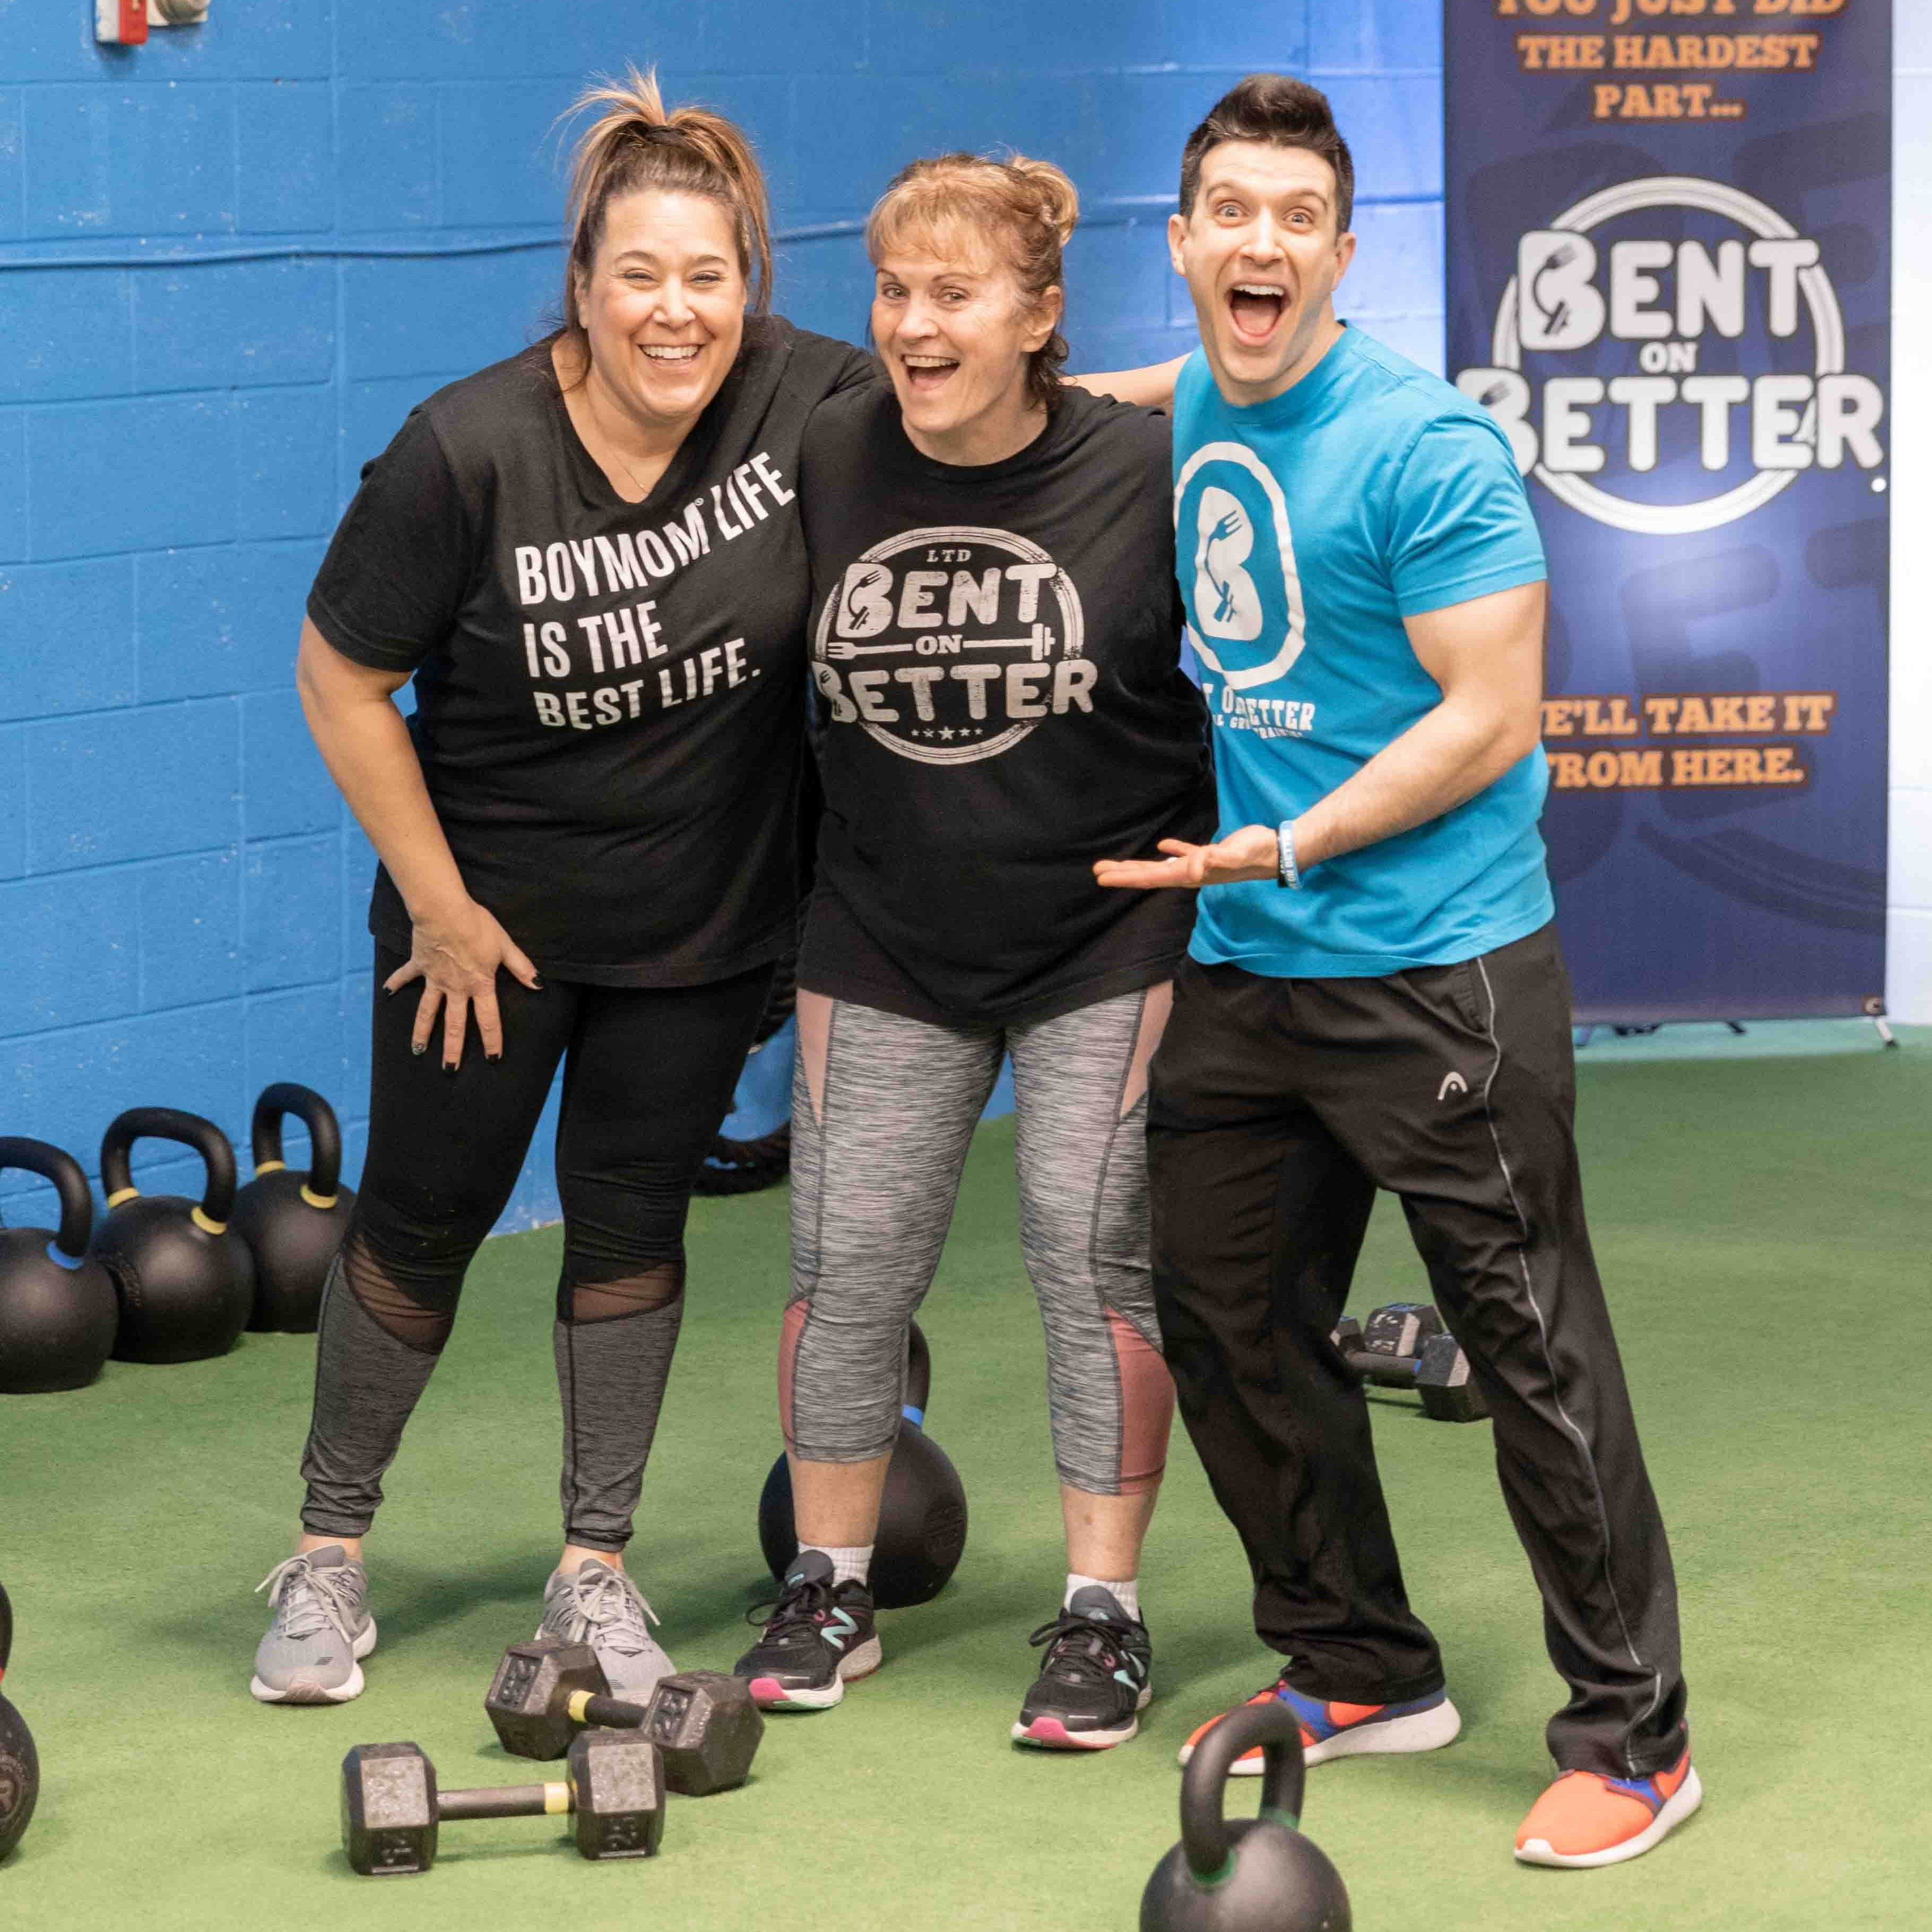 West Chester PA health coaching workout facility_Bent On Better 1